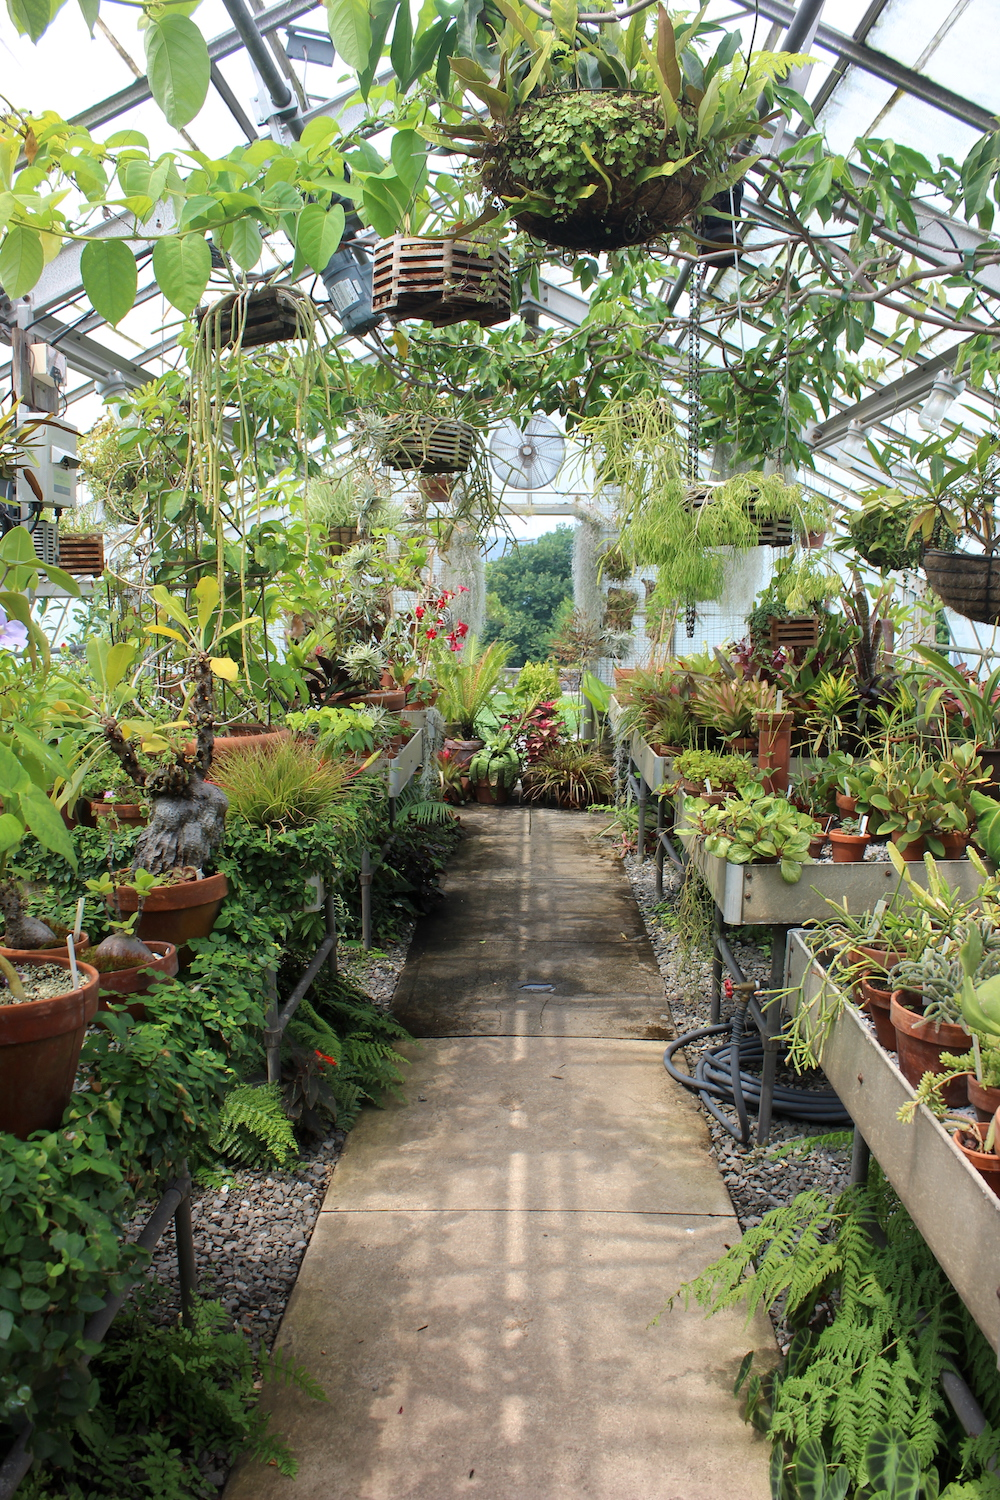 Marco Polo Stufano Conservatory at Wave Hill, Bronx, N.Y. | Photo credit: Rose Spaziani